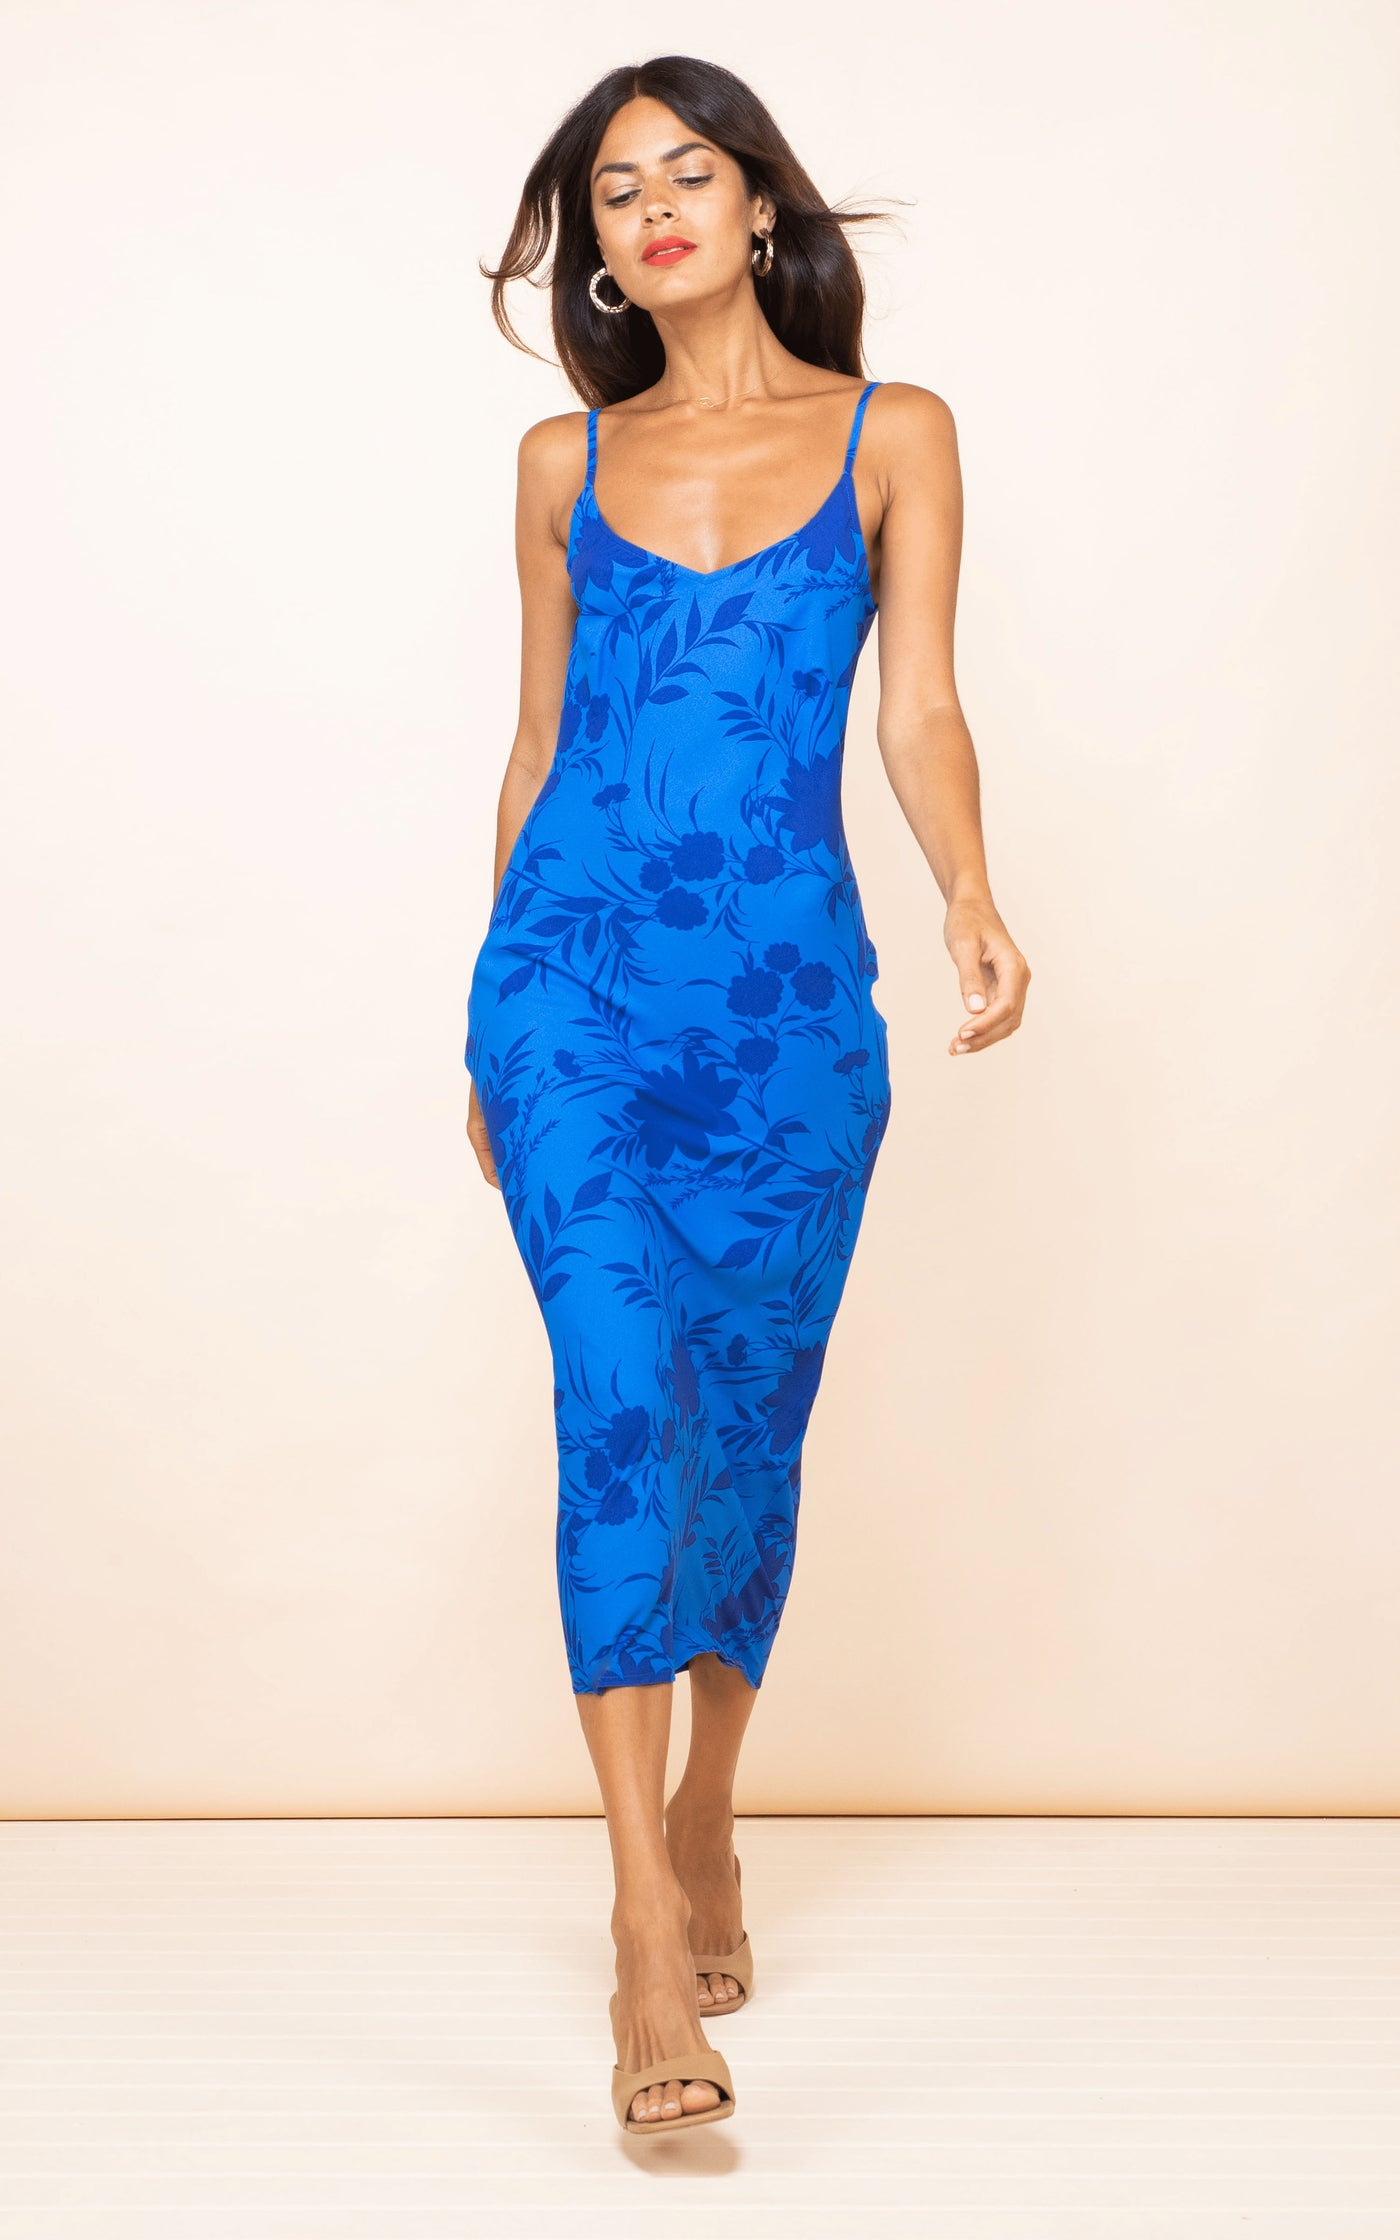 Dancing Leopard model walks forward wearing Sienna Midaxi Dress in blue floral print